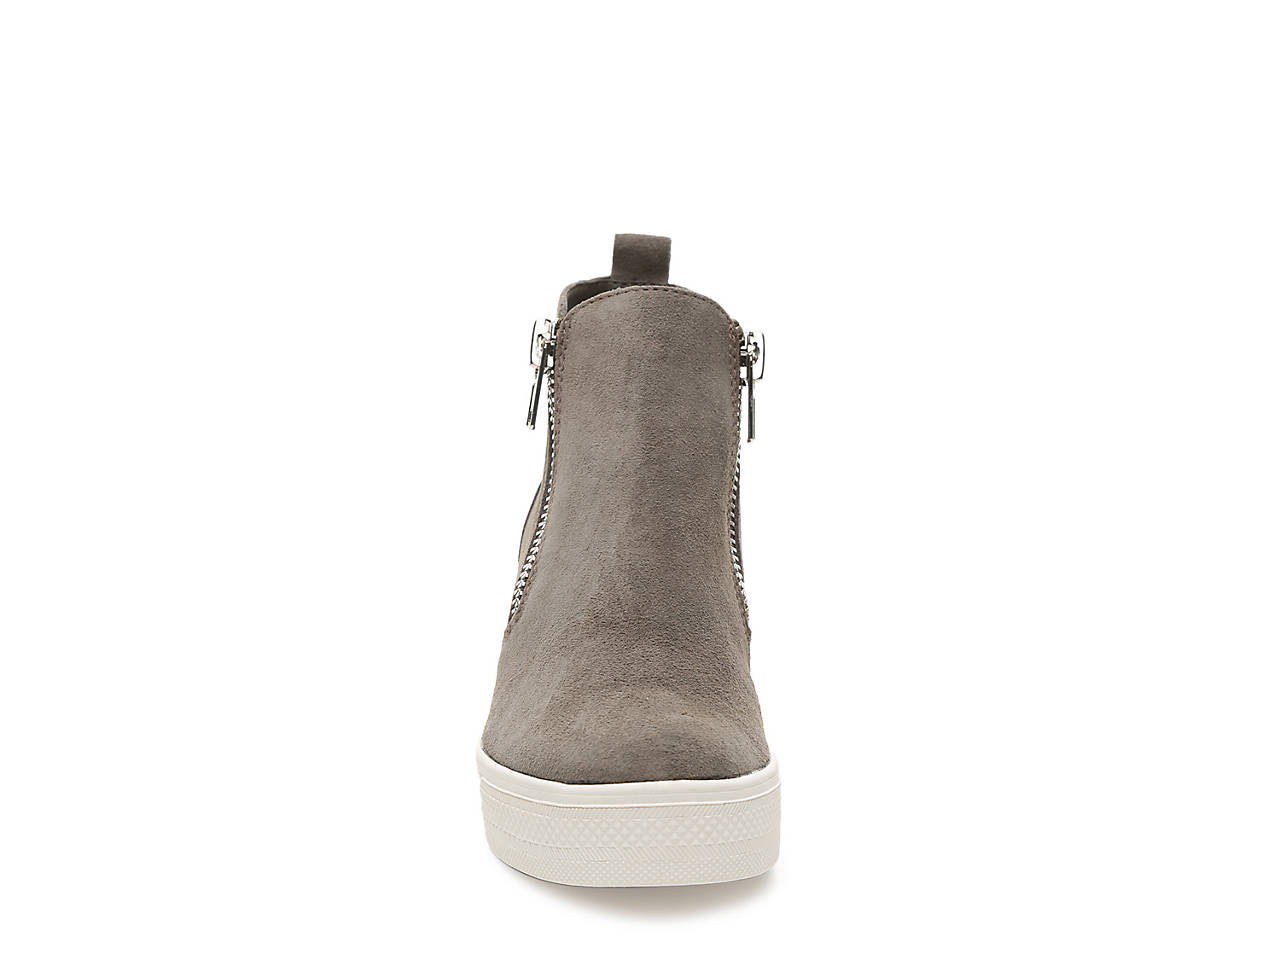 7398a2f8044 Steve Madden Wedgie Wedge Sneaker Women s Shoes